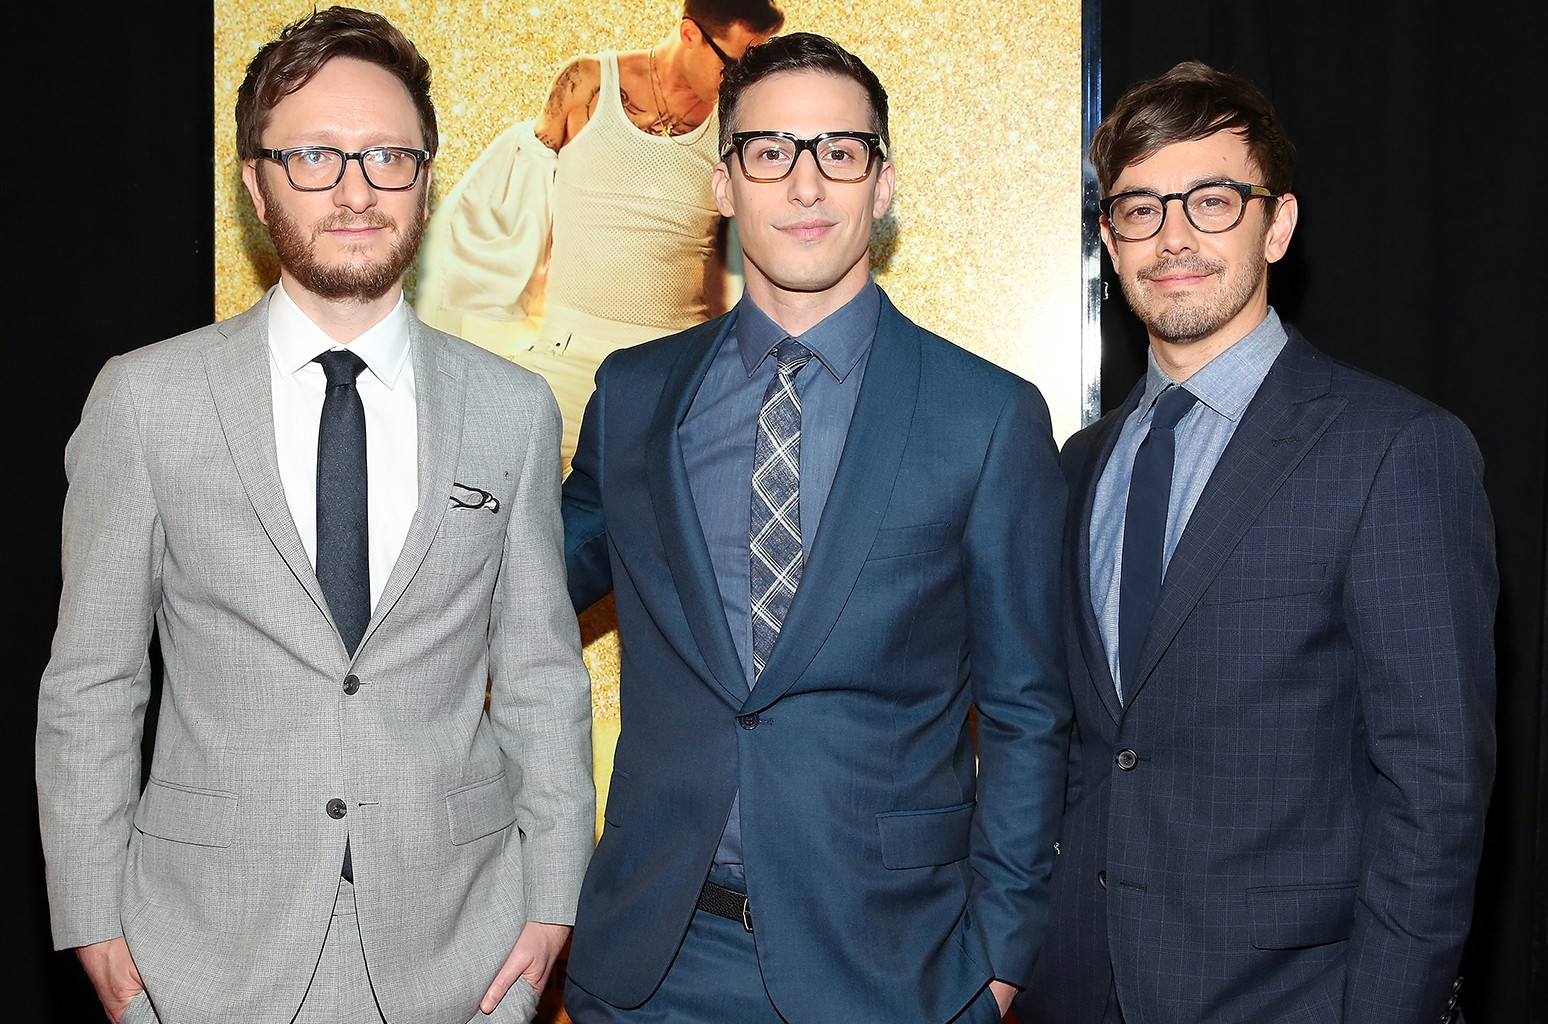 Lonely Island at the premiere of Popstar: Never Stop Never Stopping